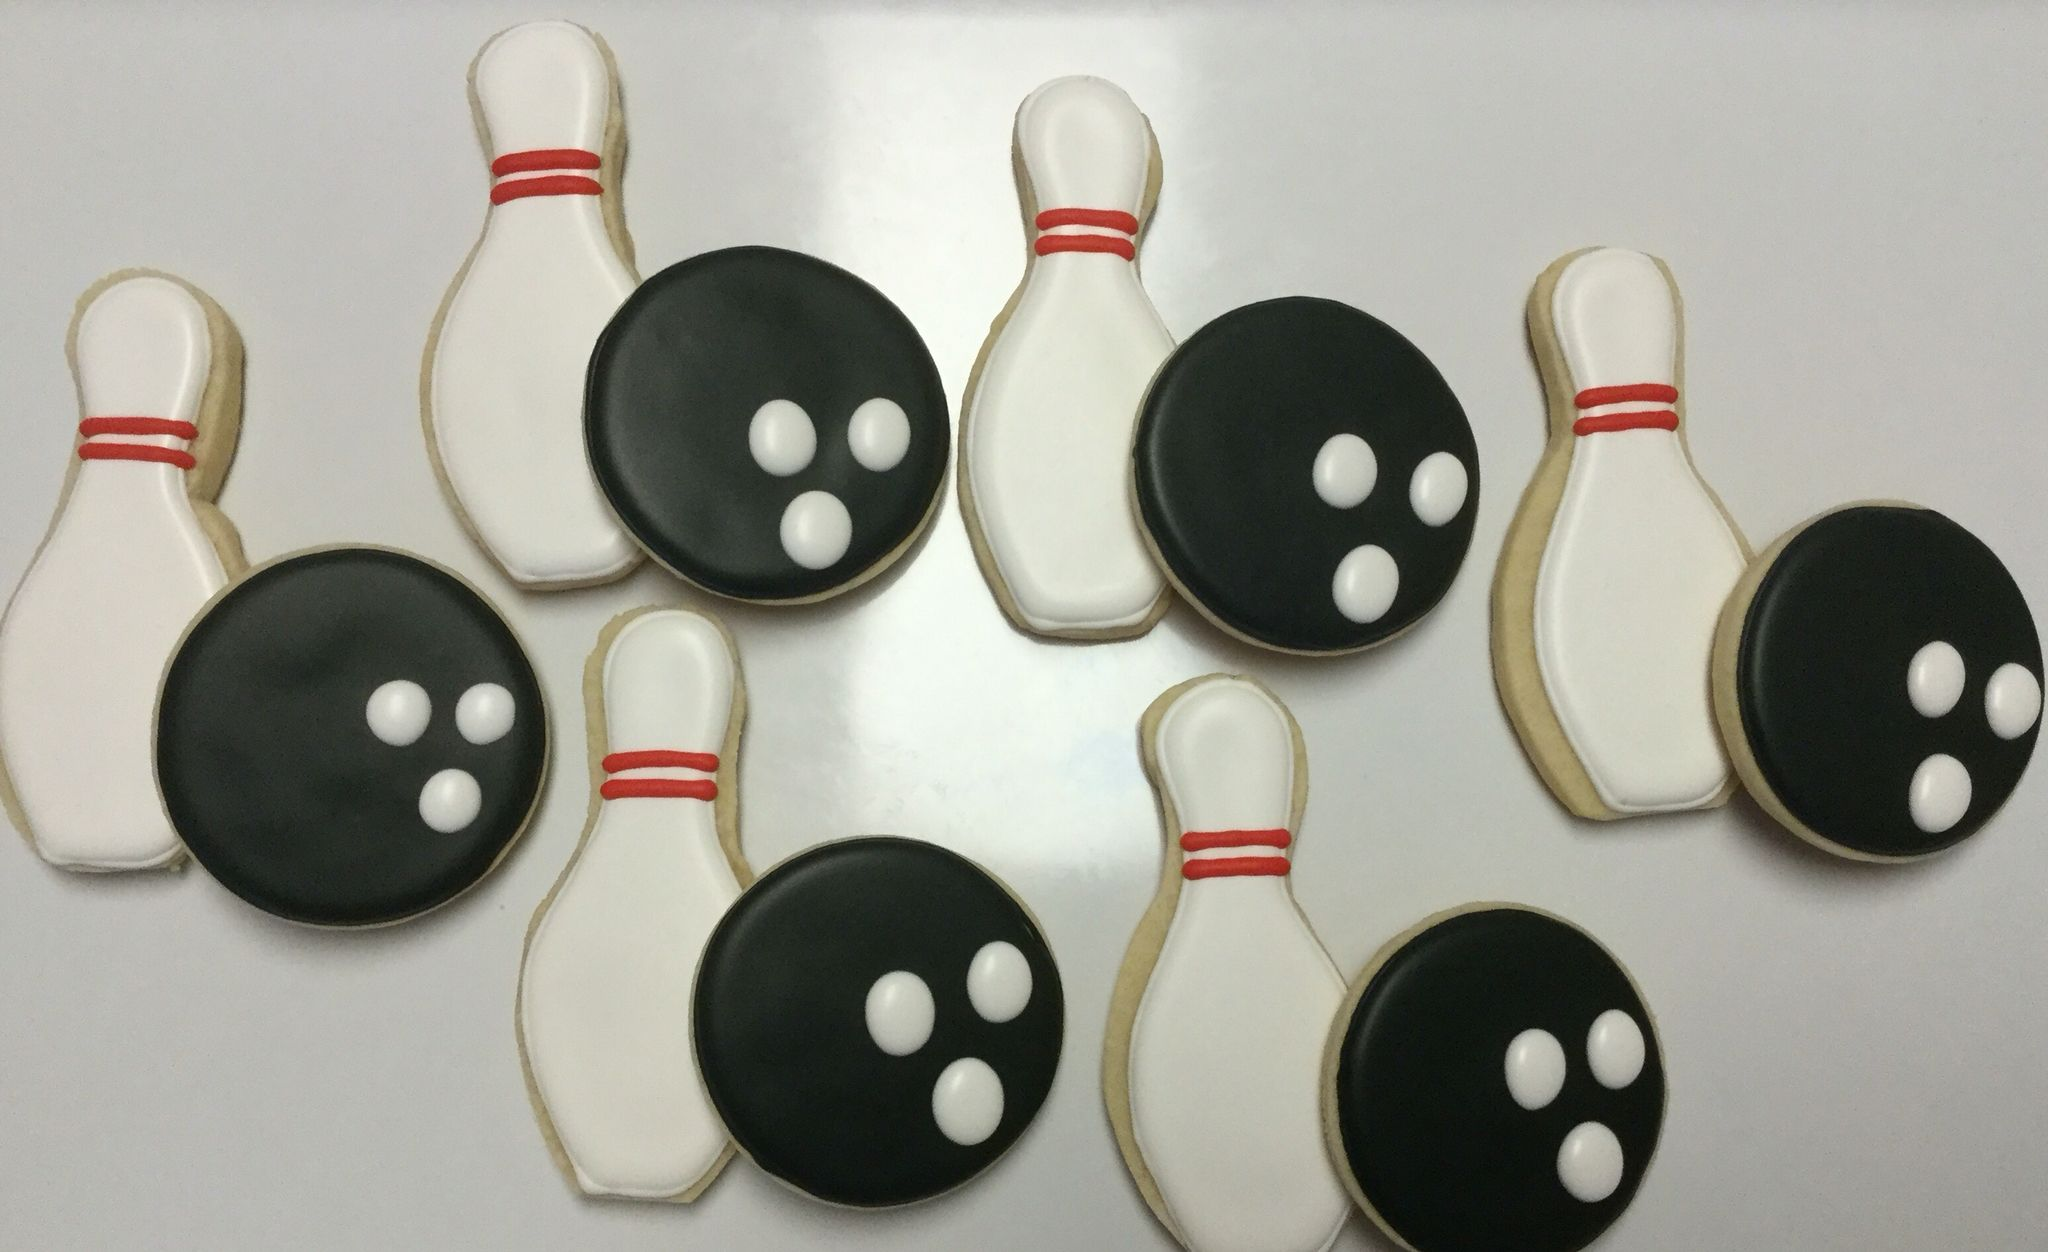 How To Decorate A Bowling Ball Bowling Ball Bowling Pin Decorated Sugar Cookiesi Am The